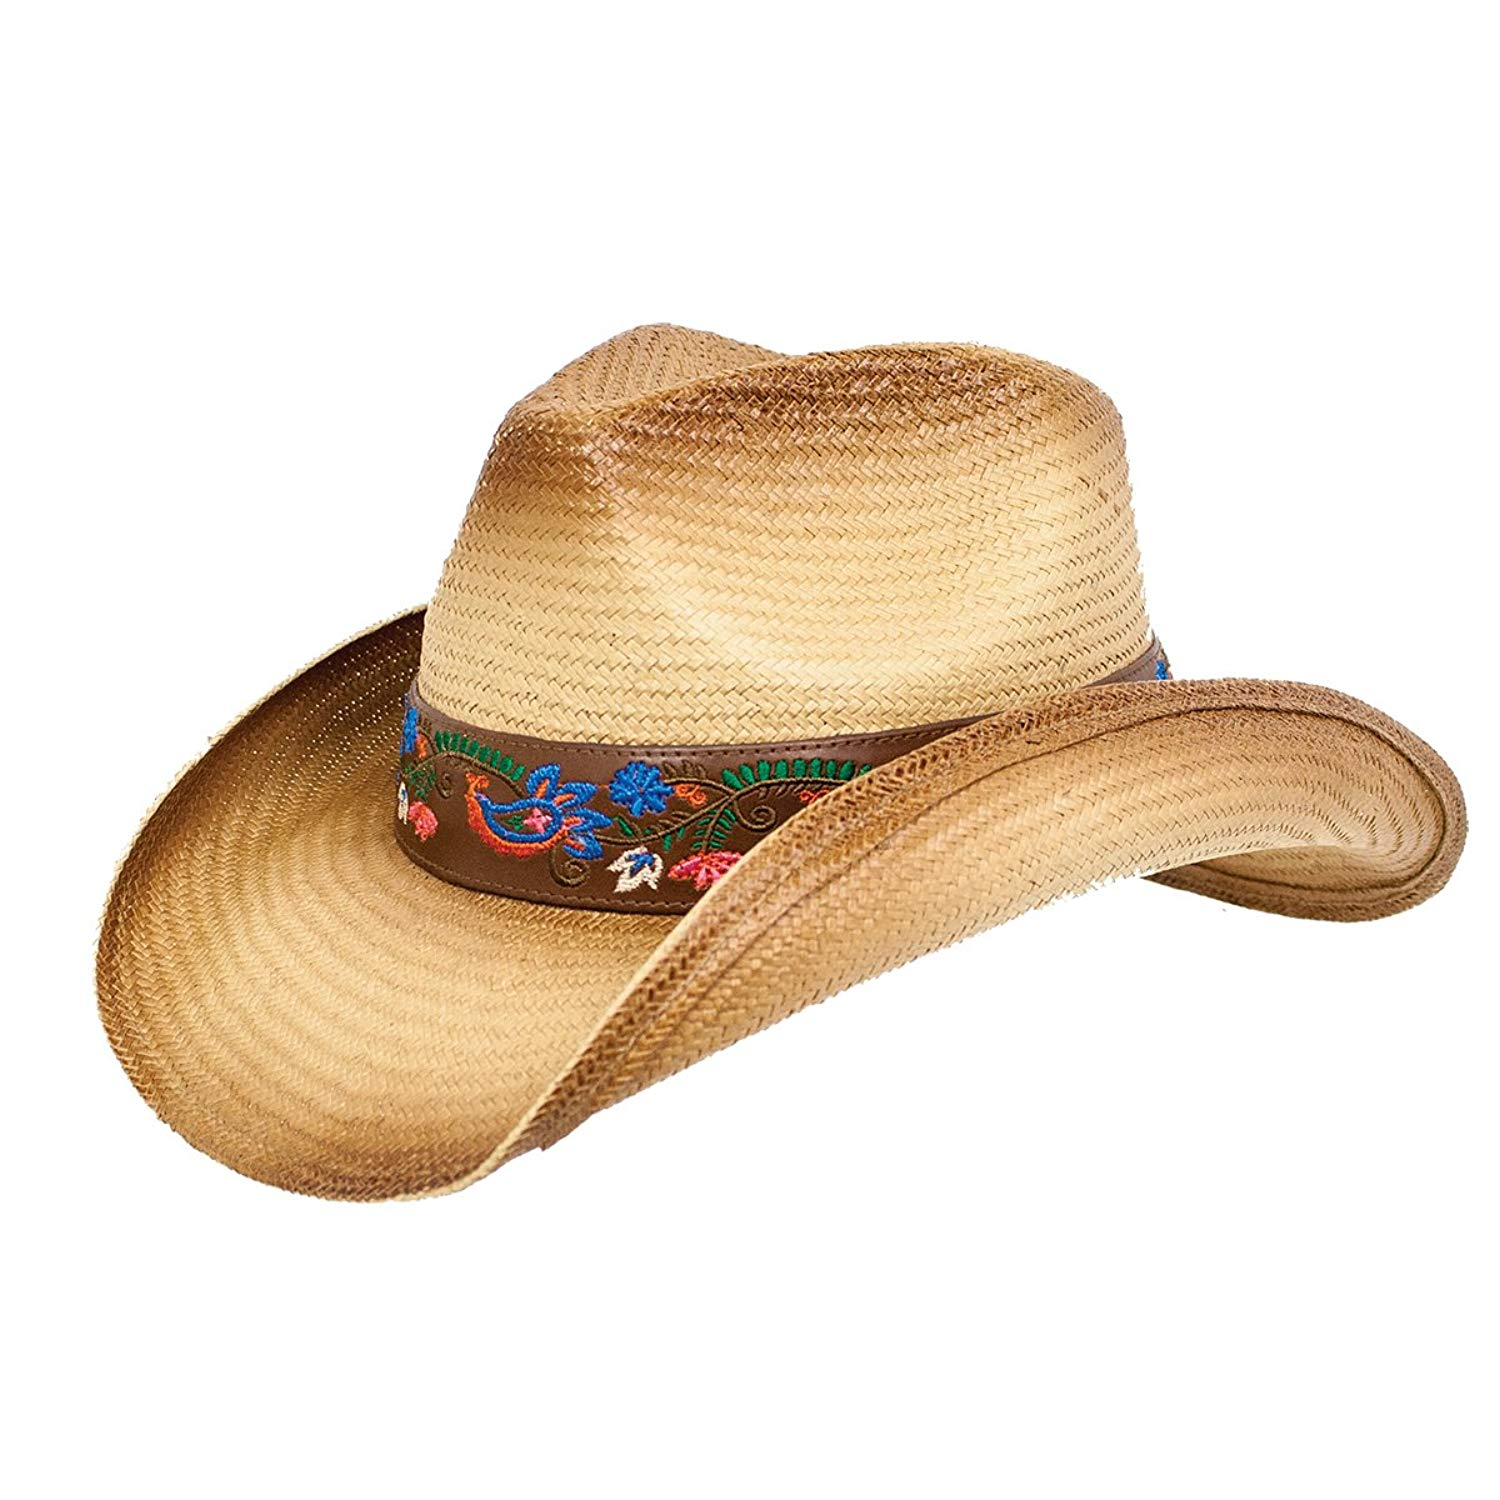 1edb476eb3a03 Buy Peter Grimm Drifter Cowboy Hat in Cheap Price on Alibaba.com